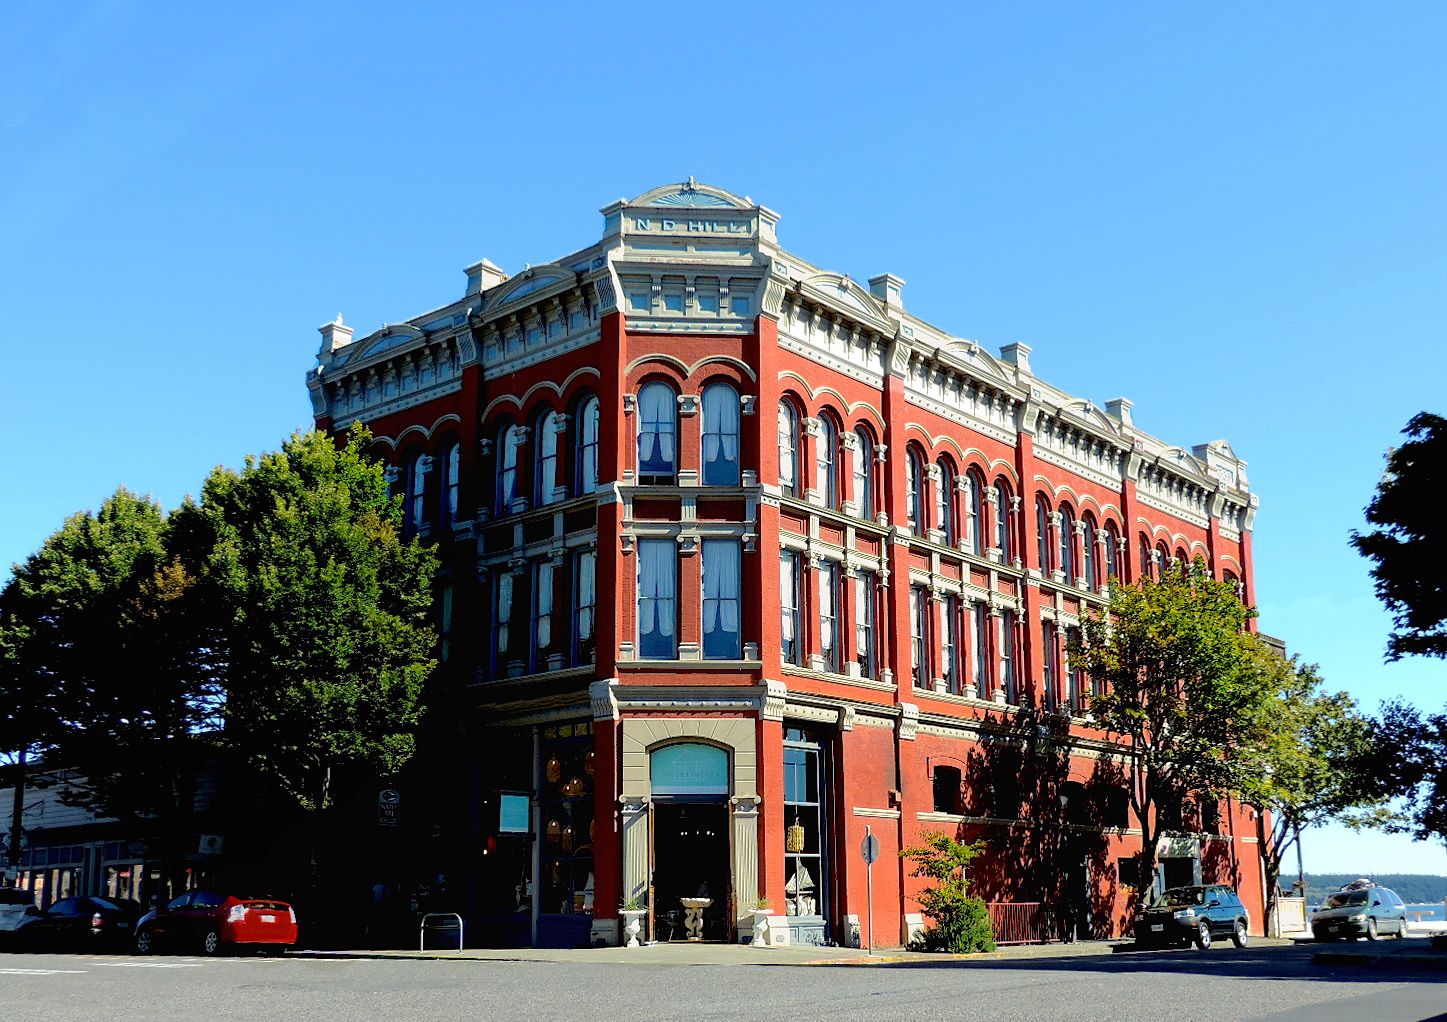 Waterstreet Hotel in Port Townsend. Call 800.735.9810